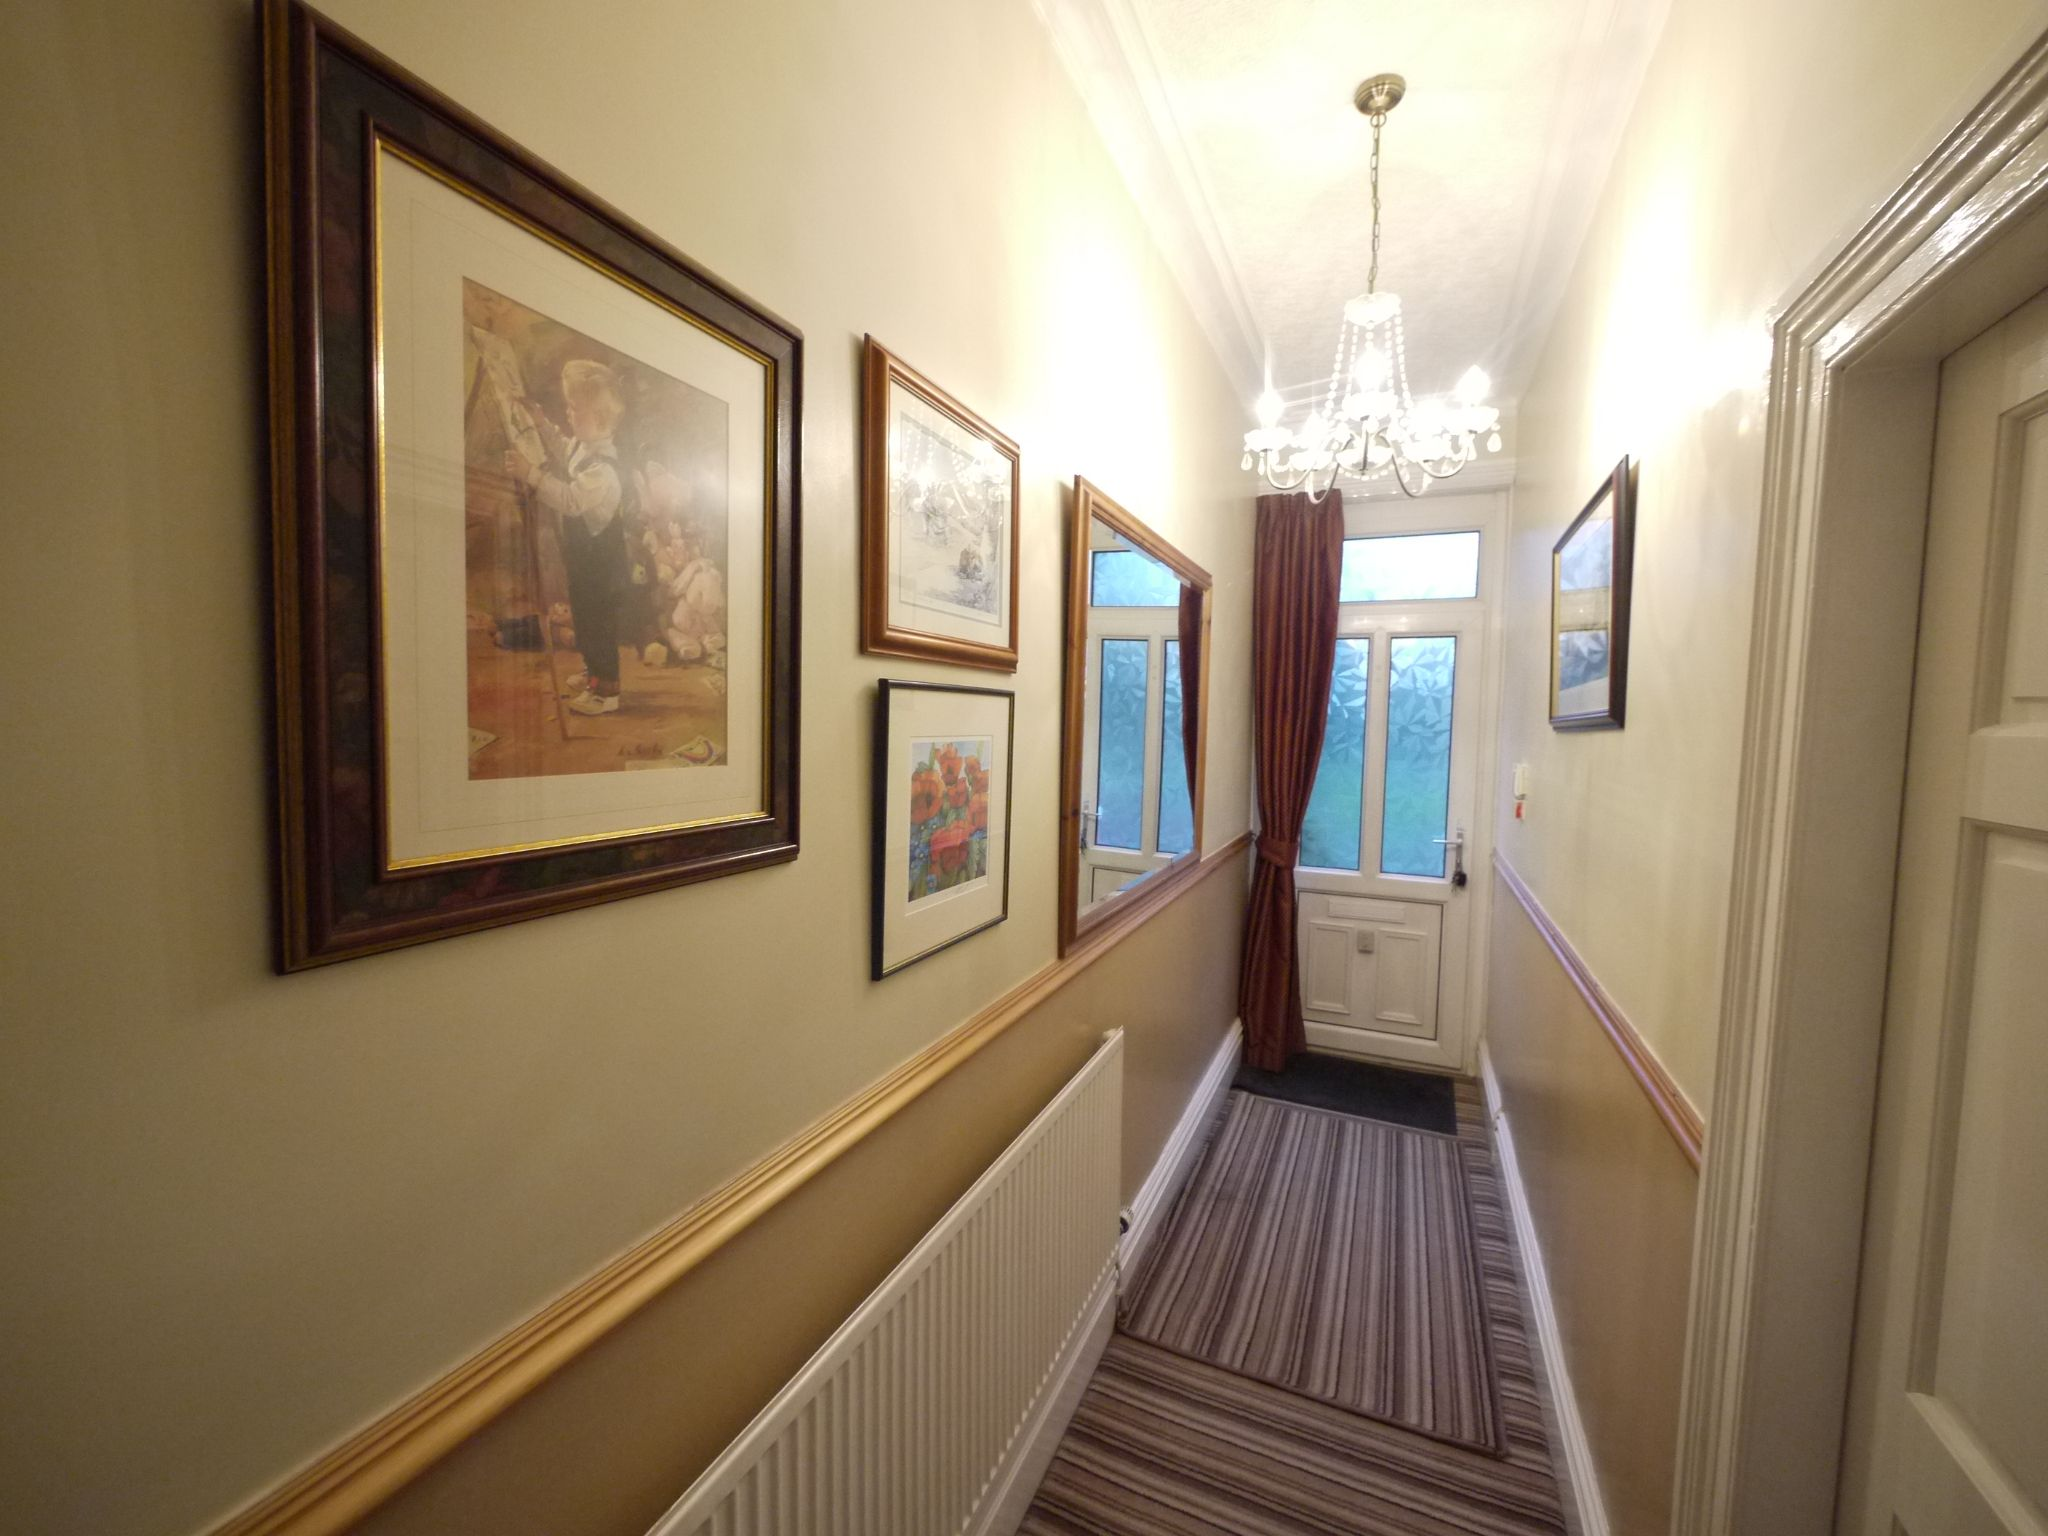 3 bedroom semi-detached house For Sale in Calderdale - Photograph 4.